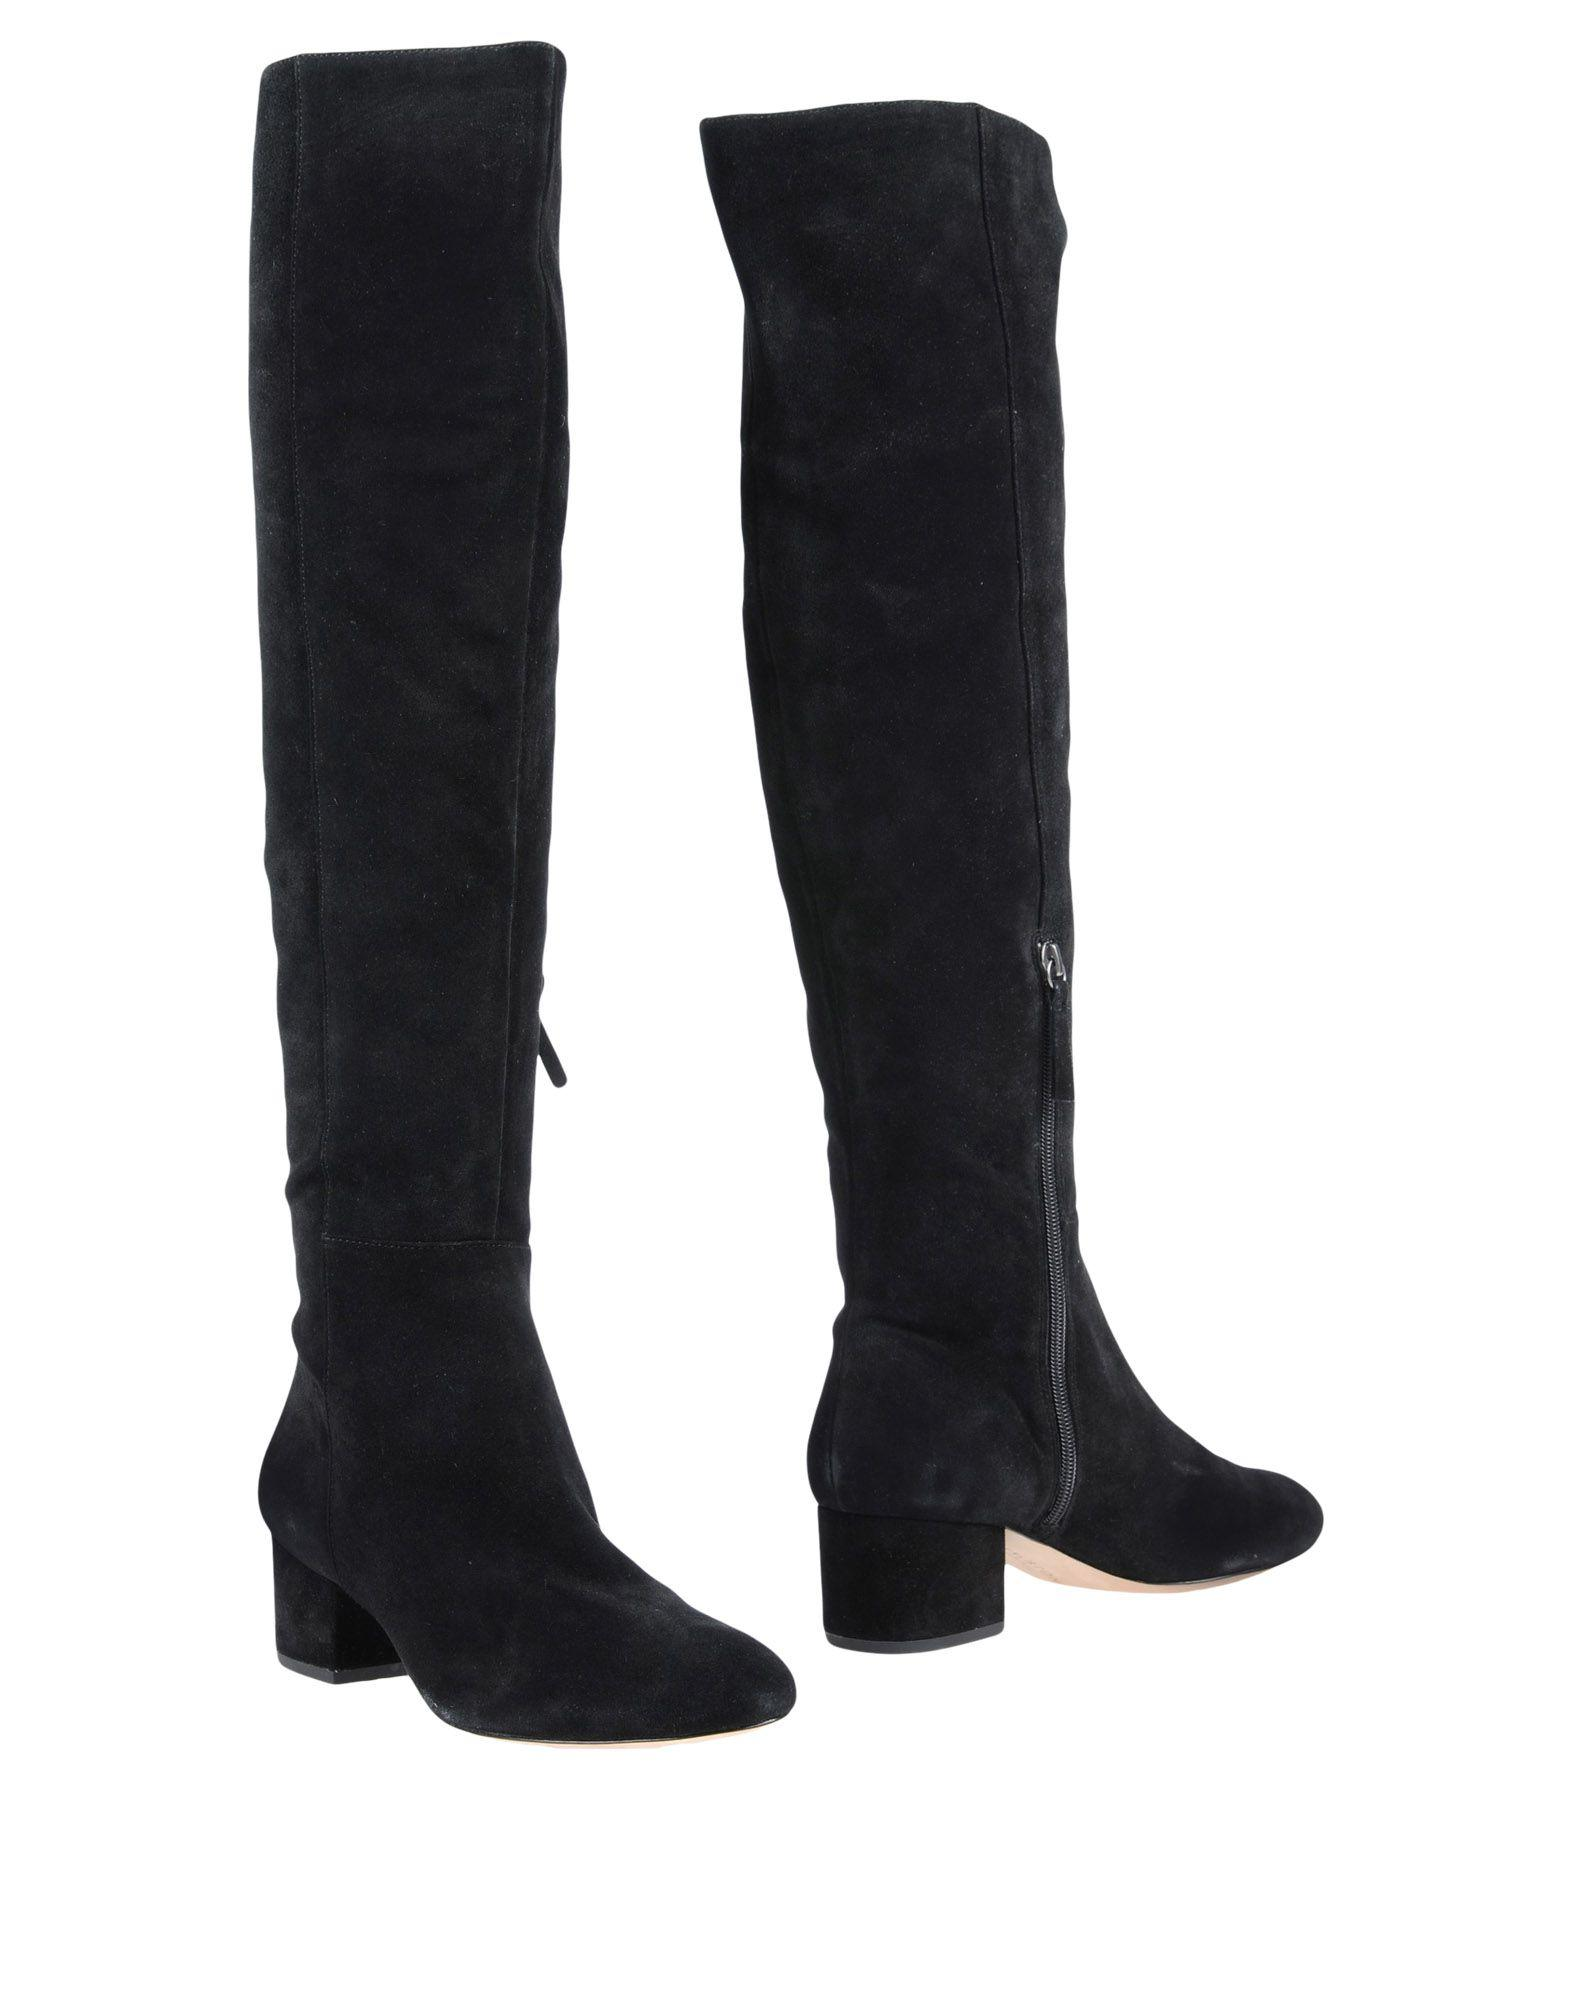 Halston Heritage Boots In Black